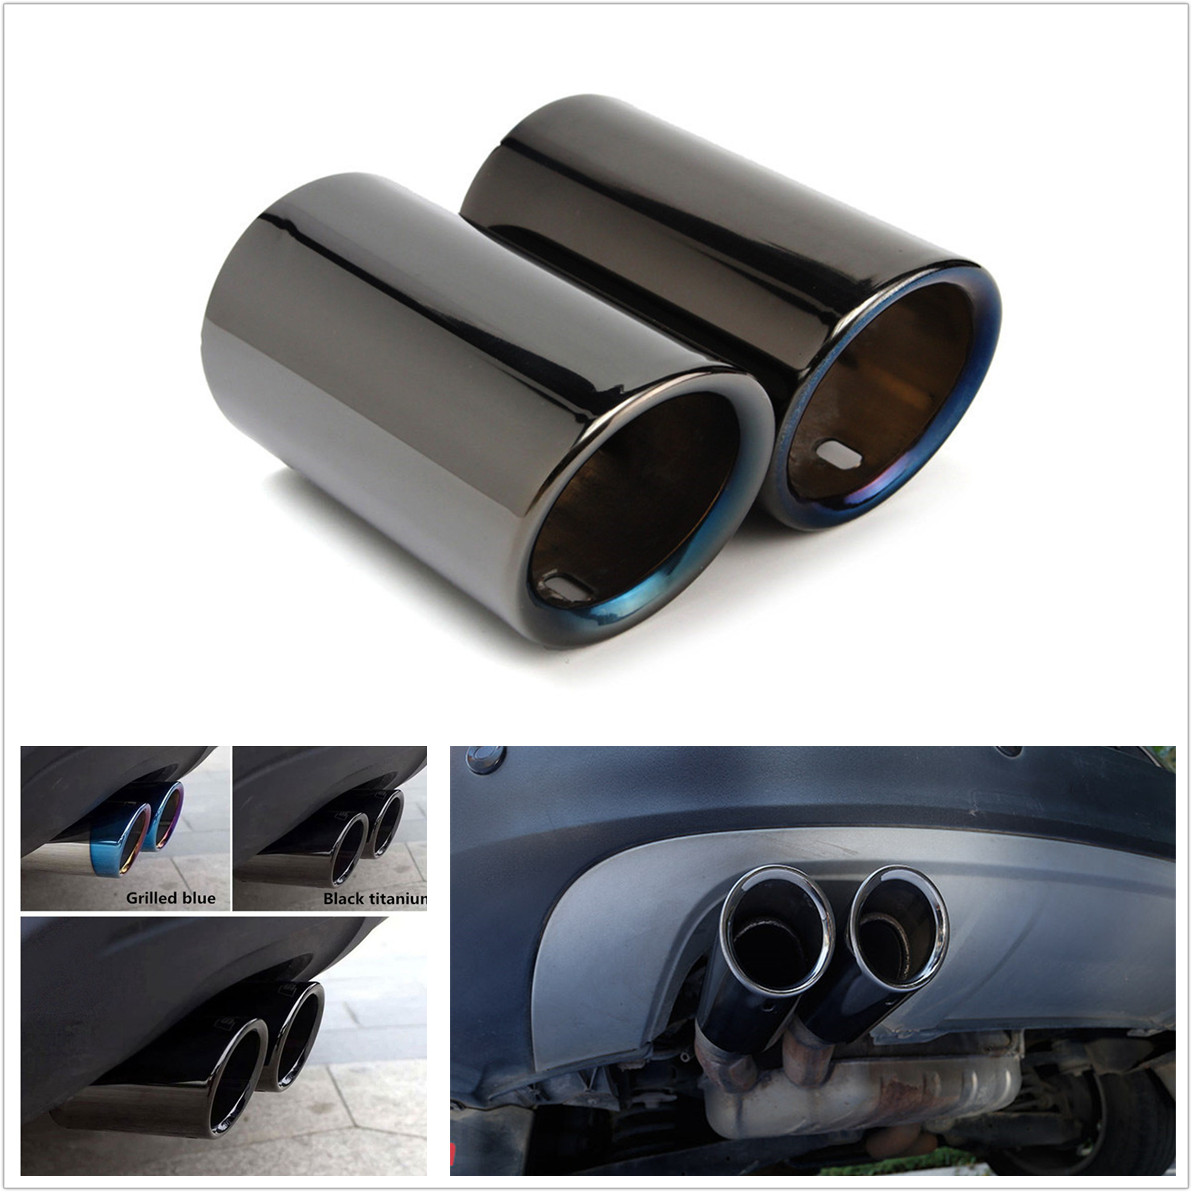 2X Chrome Titanium Blue Car Stainless Steel Exhaust Tail Pipes Muffler Work Well